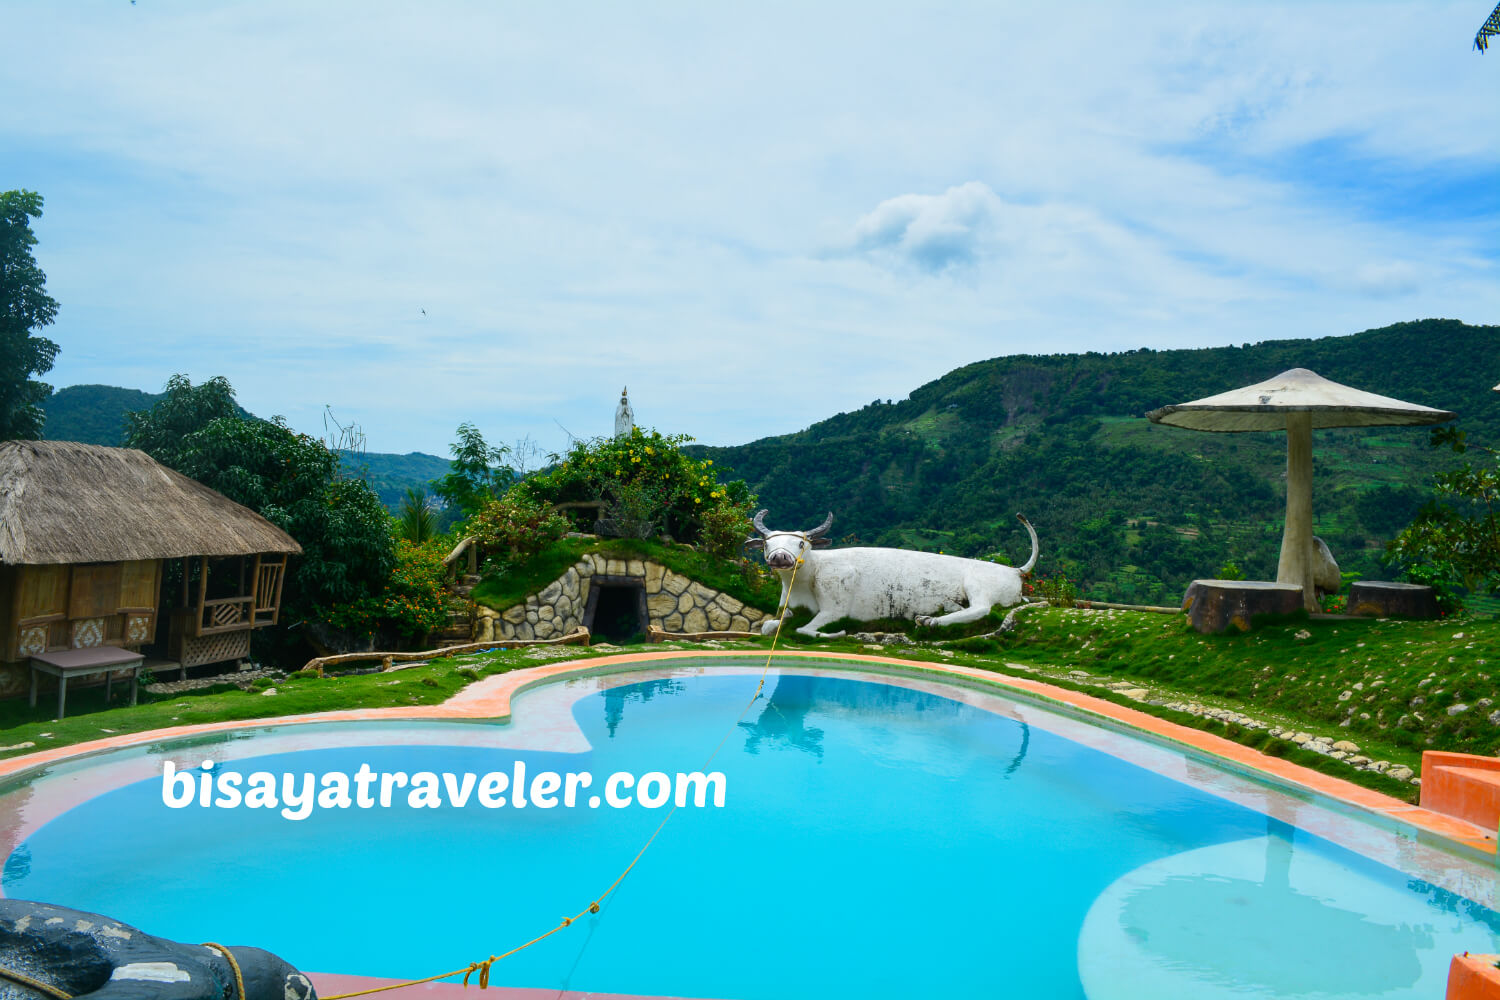 Coal mountain resort a scenic retreat tucked away in for Pool garden resort argao